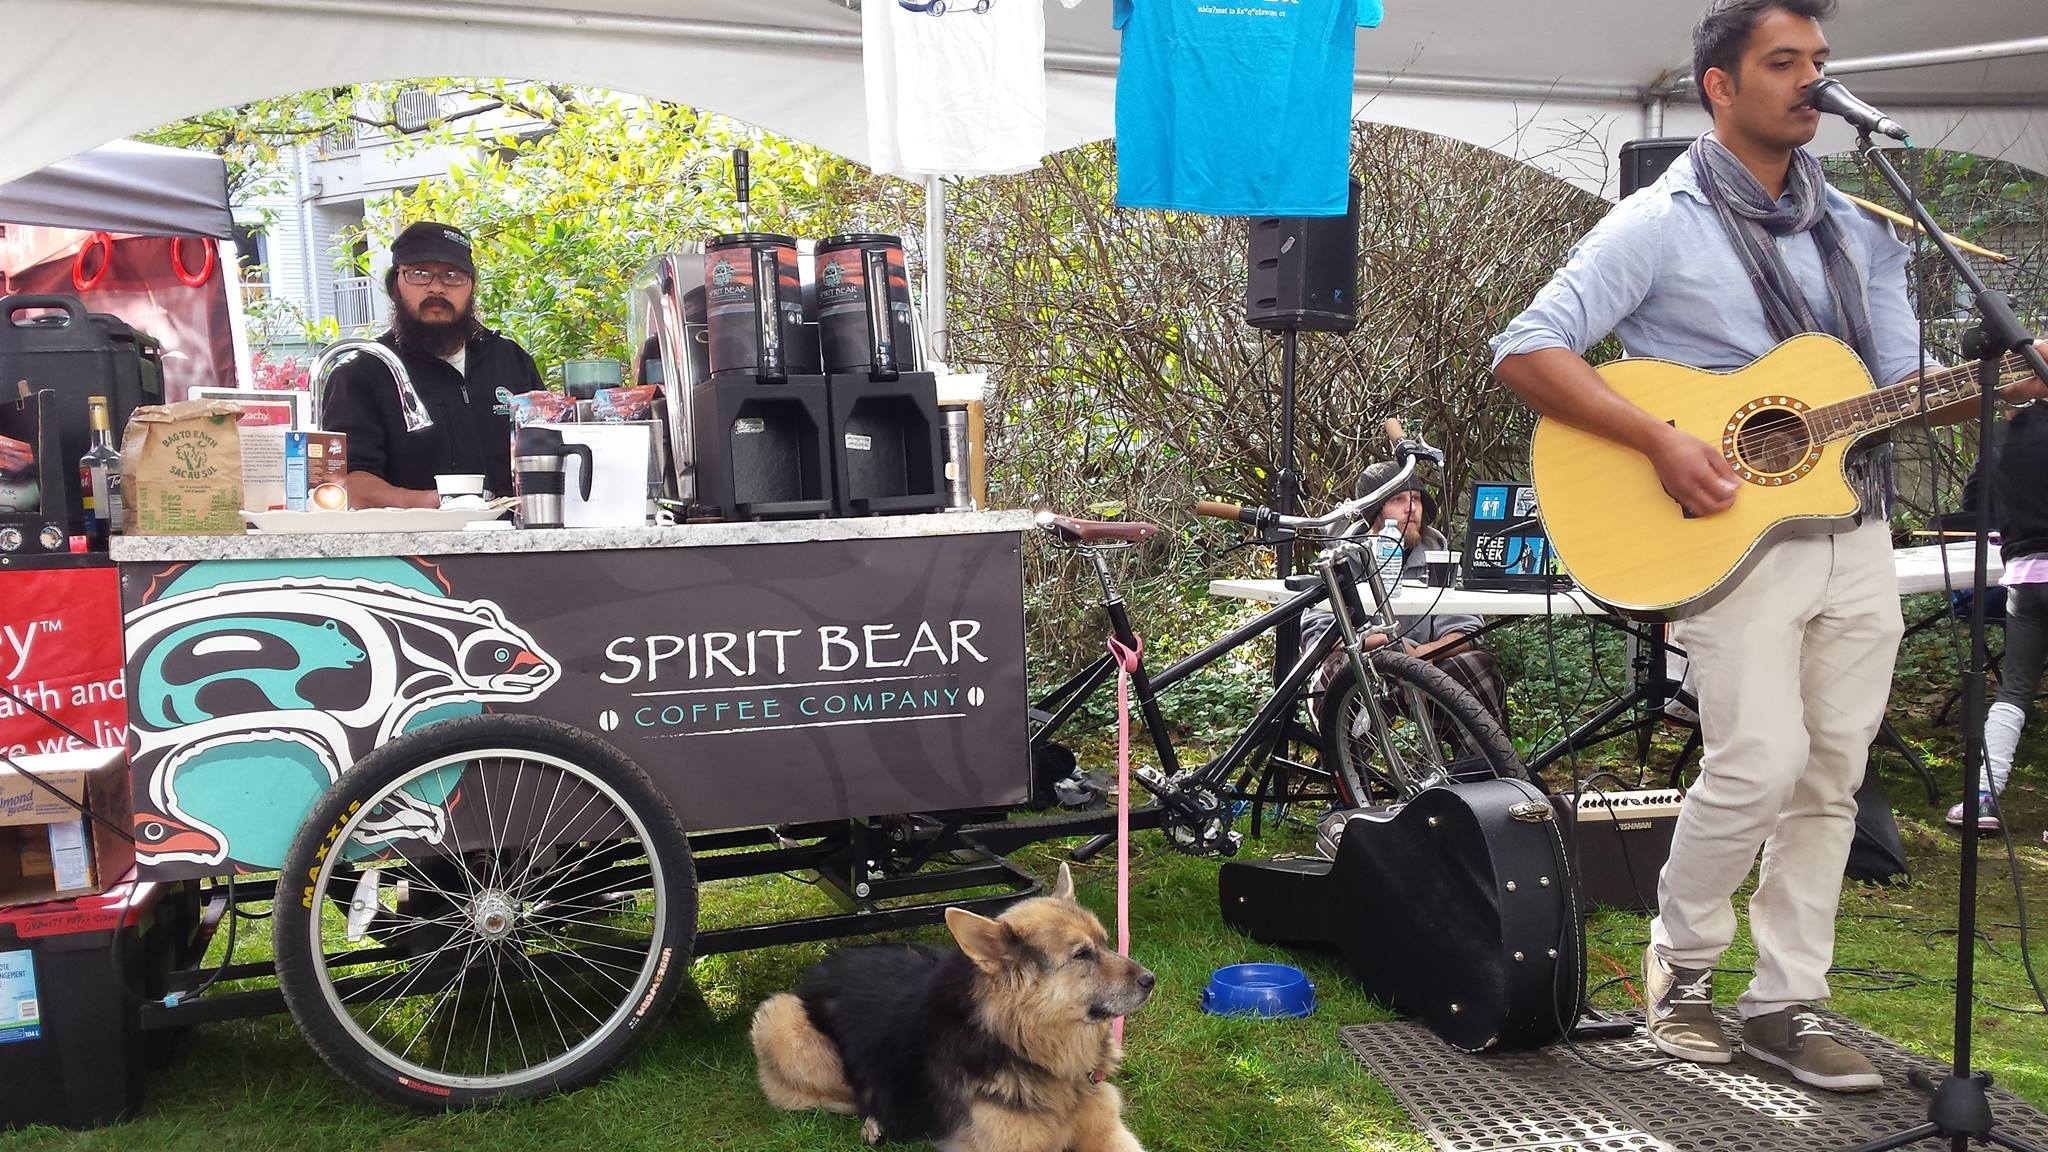 Jay Peachy serves up Spirit Bear coffee while Etienne Siew performs.